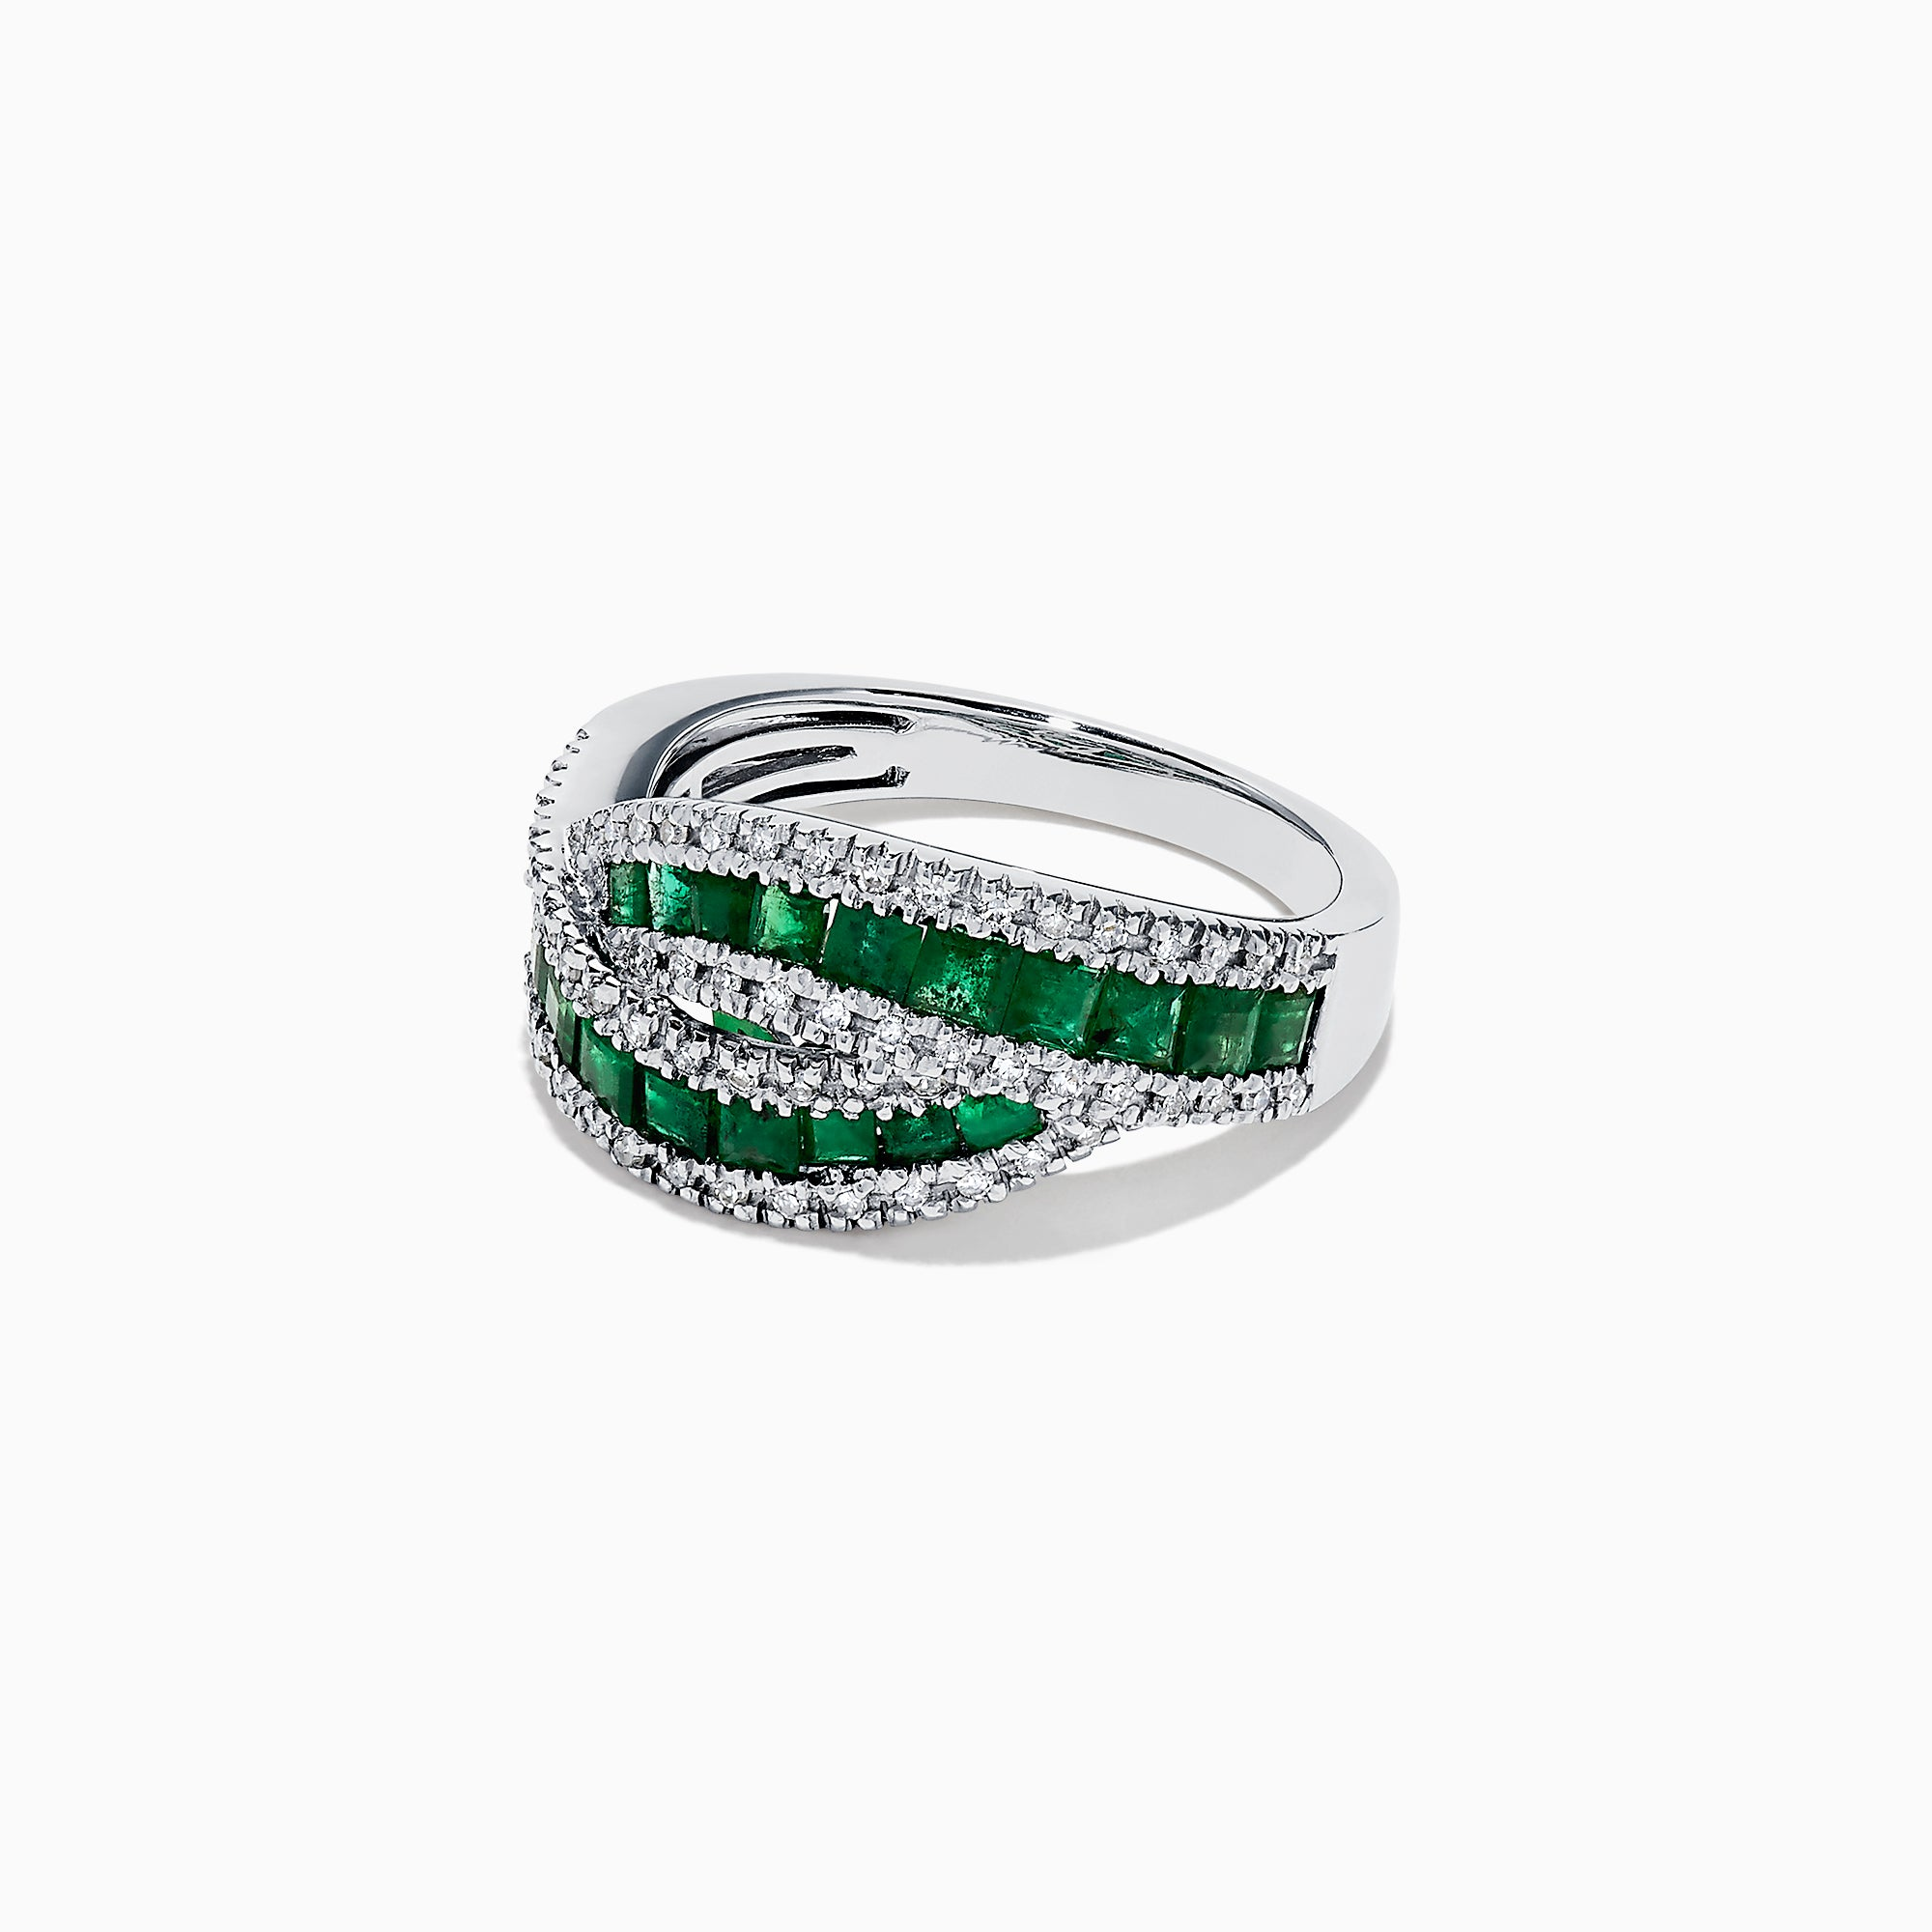 Effy Brasilica 14K White Gold Emerald and Diamond Ring, 1.76 TCW